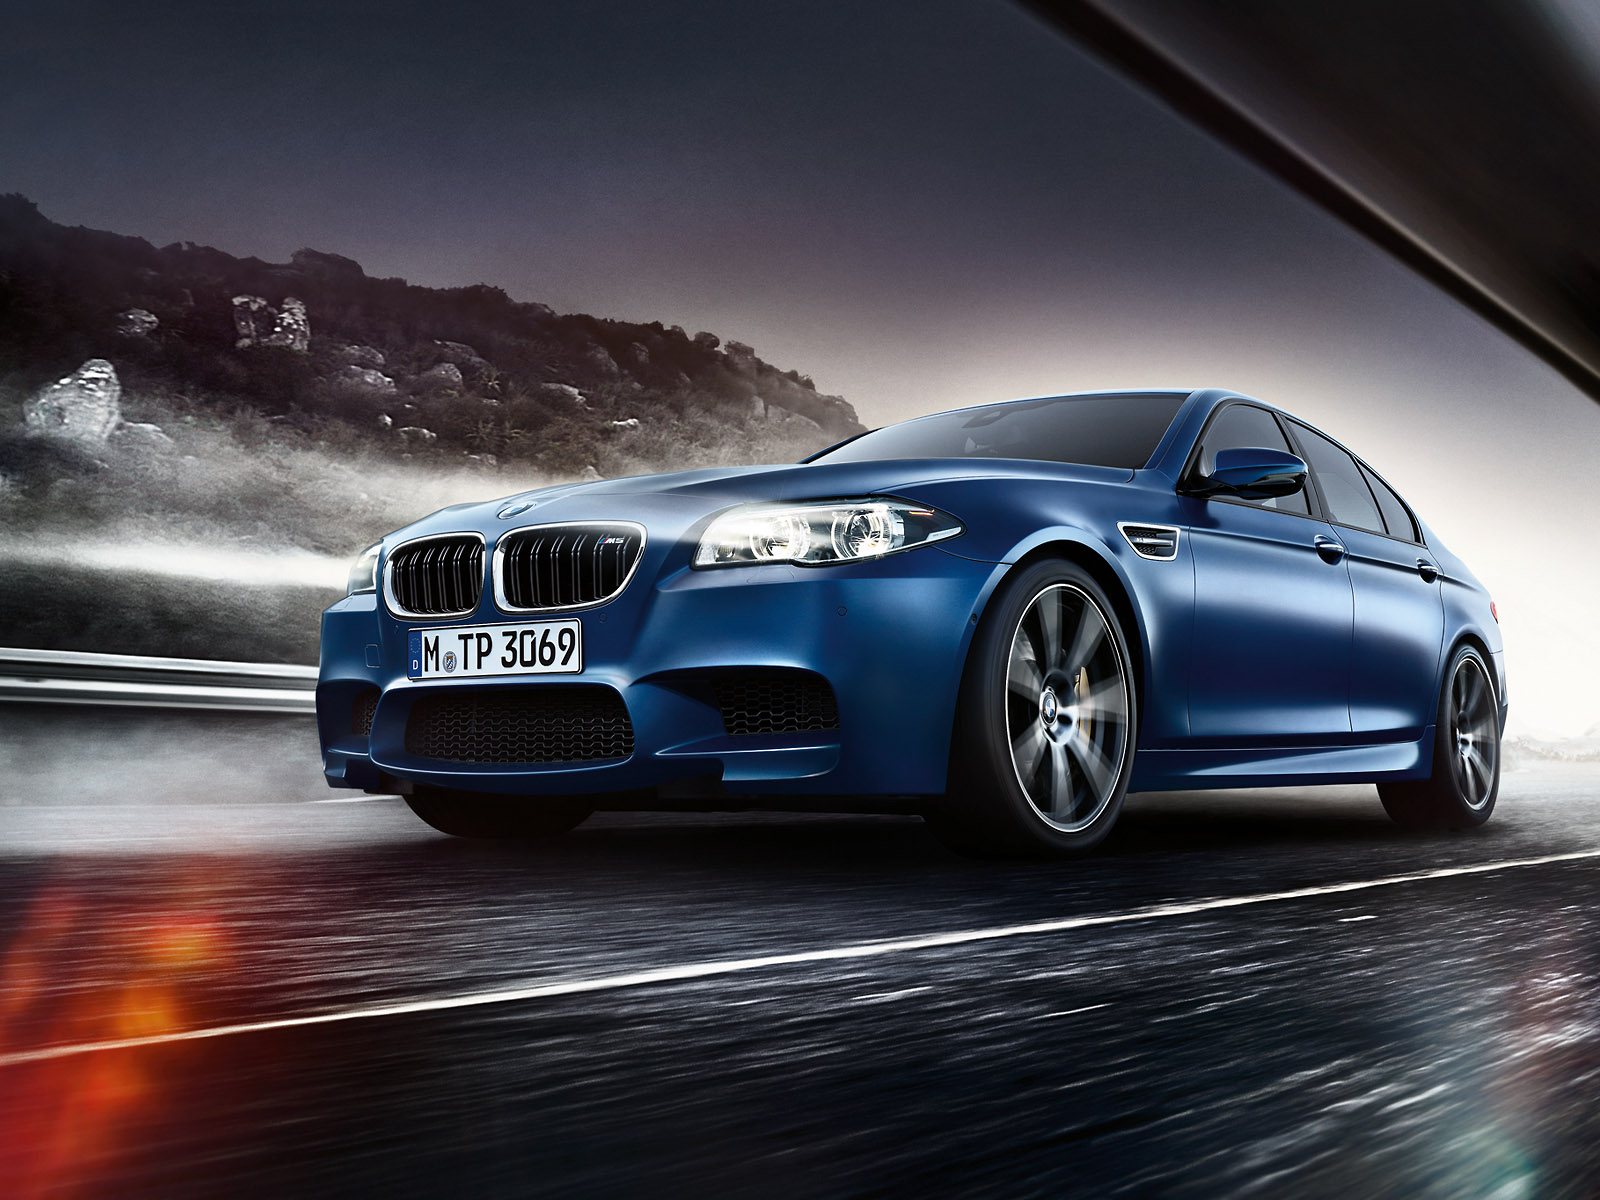 2014 Bmw M5 Competition Package Wallpaper   HD 1600x1200